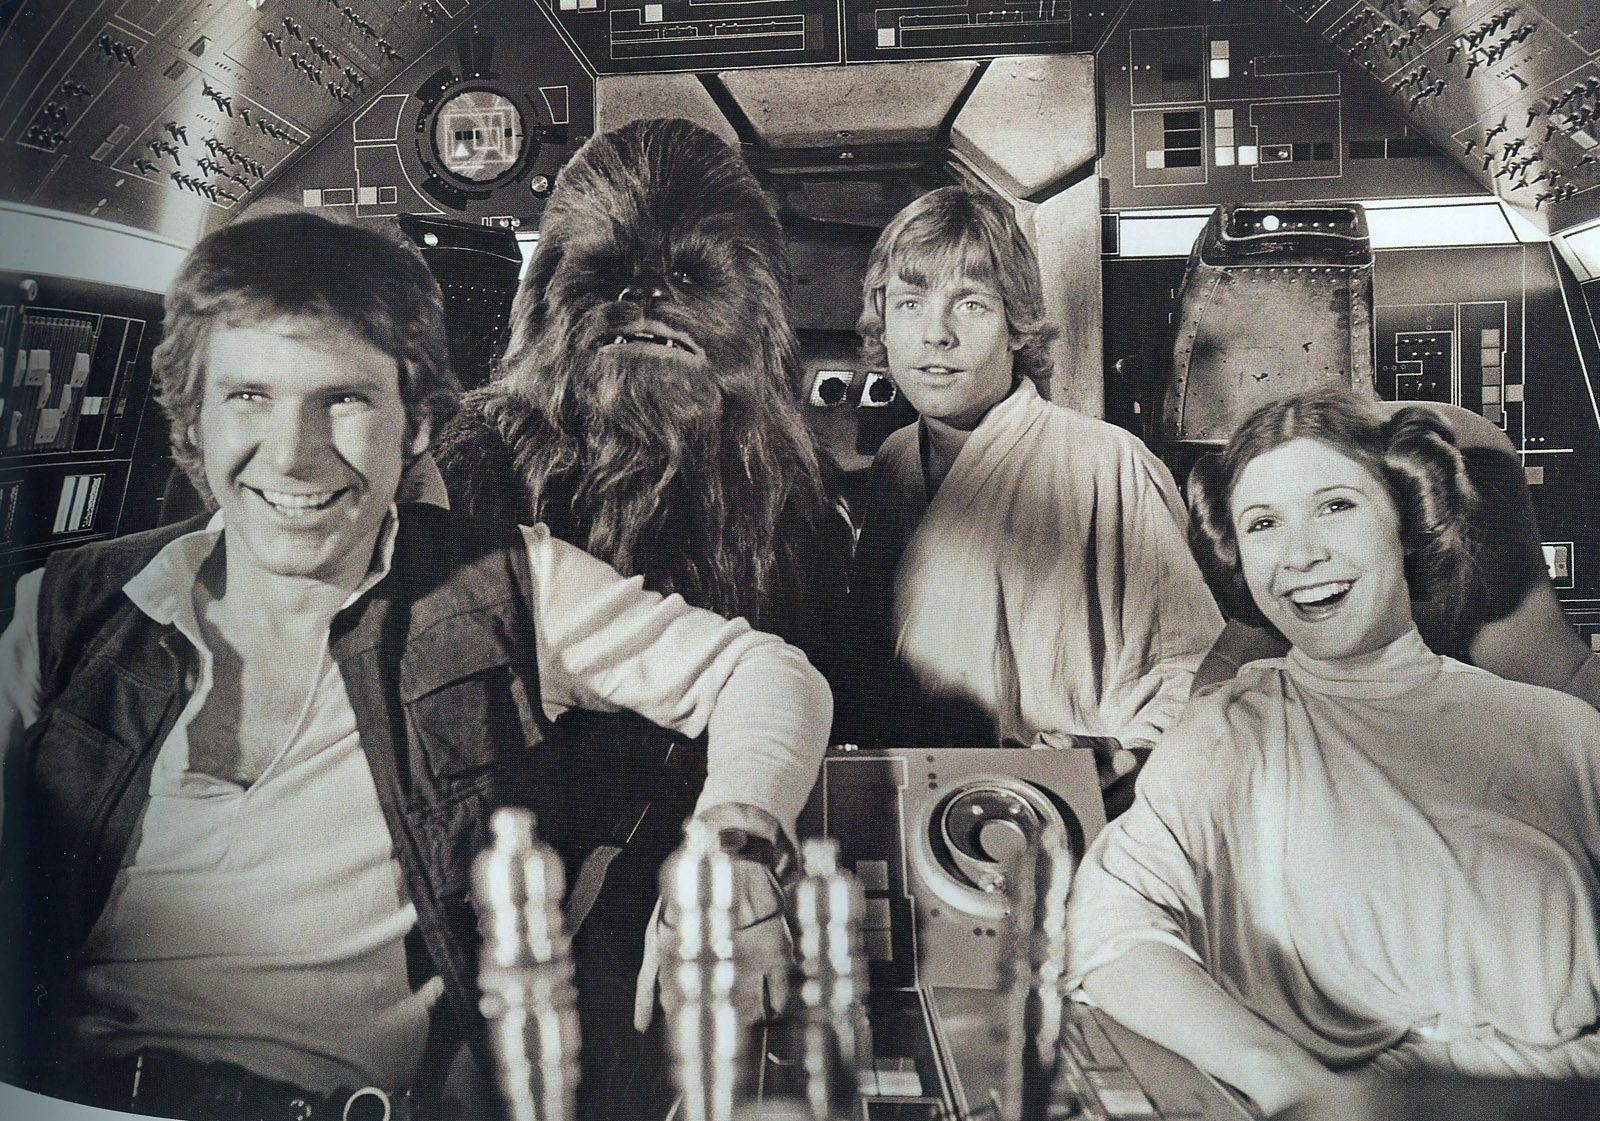 mnpkbrz-behind-the-scenes-photos-of-star-wars-episodes-1-6-and-much-more-jpeg-77769.jpg